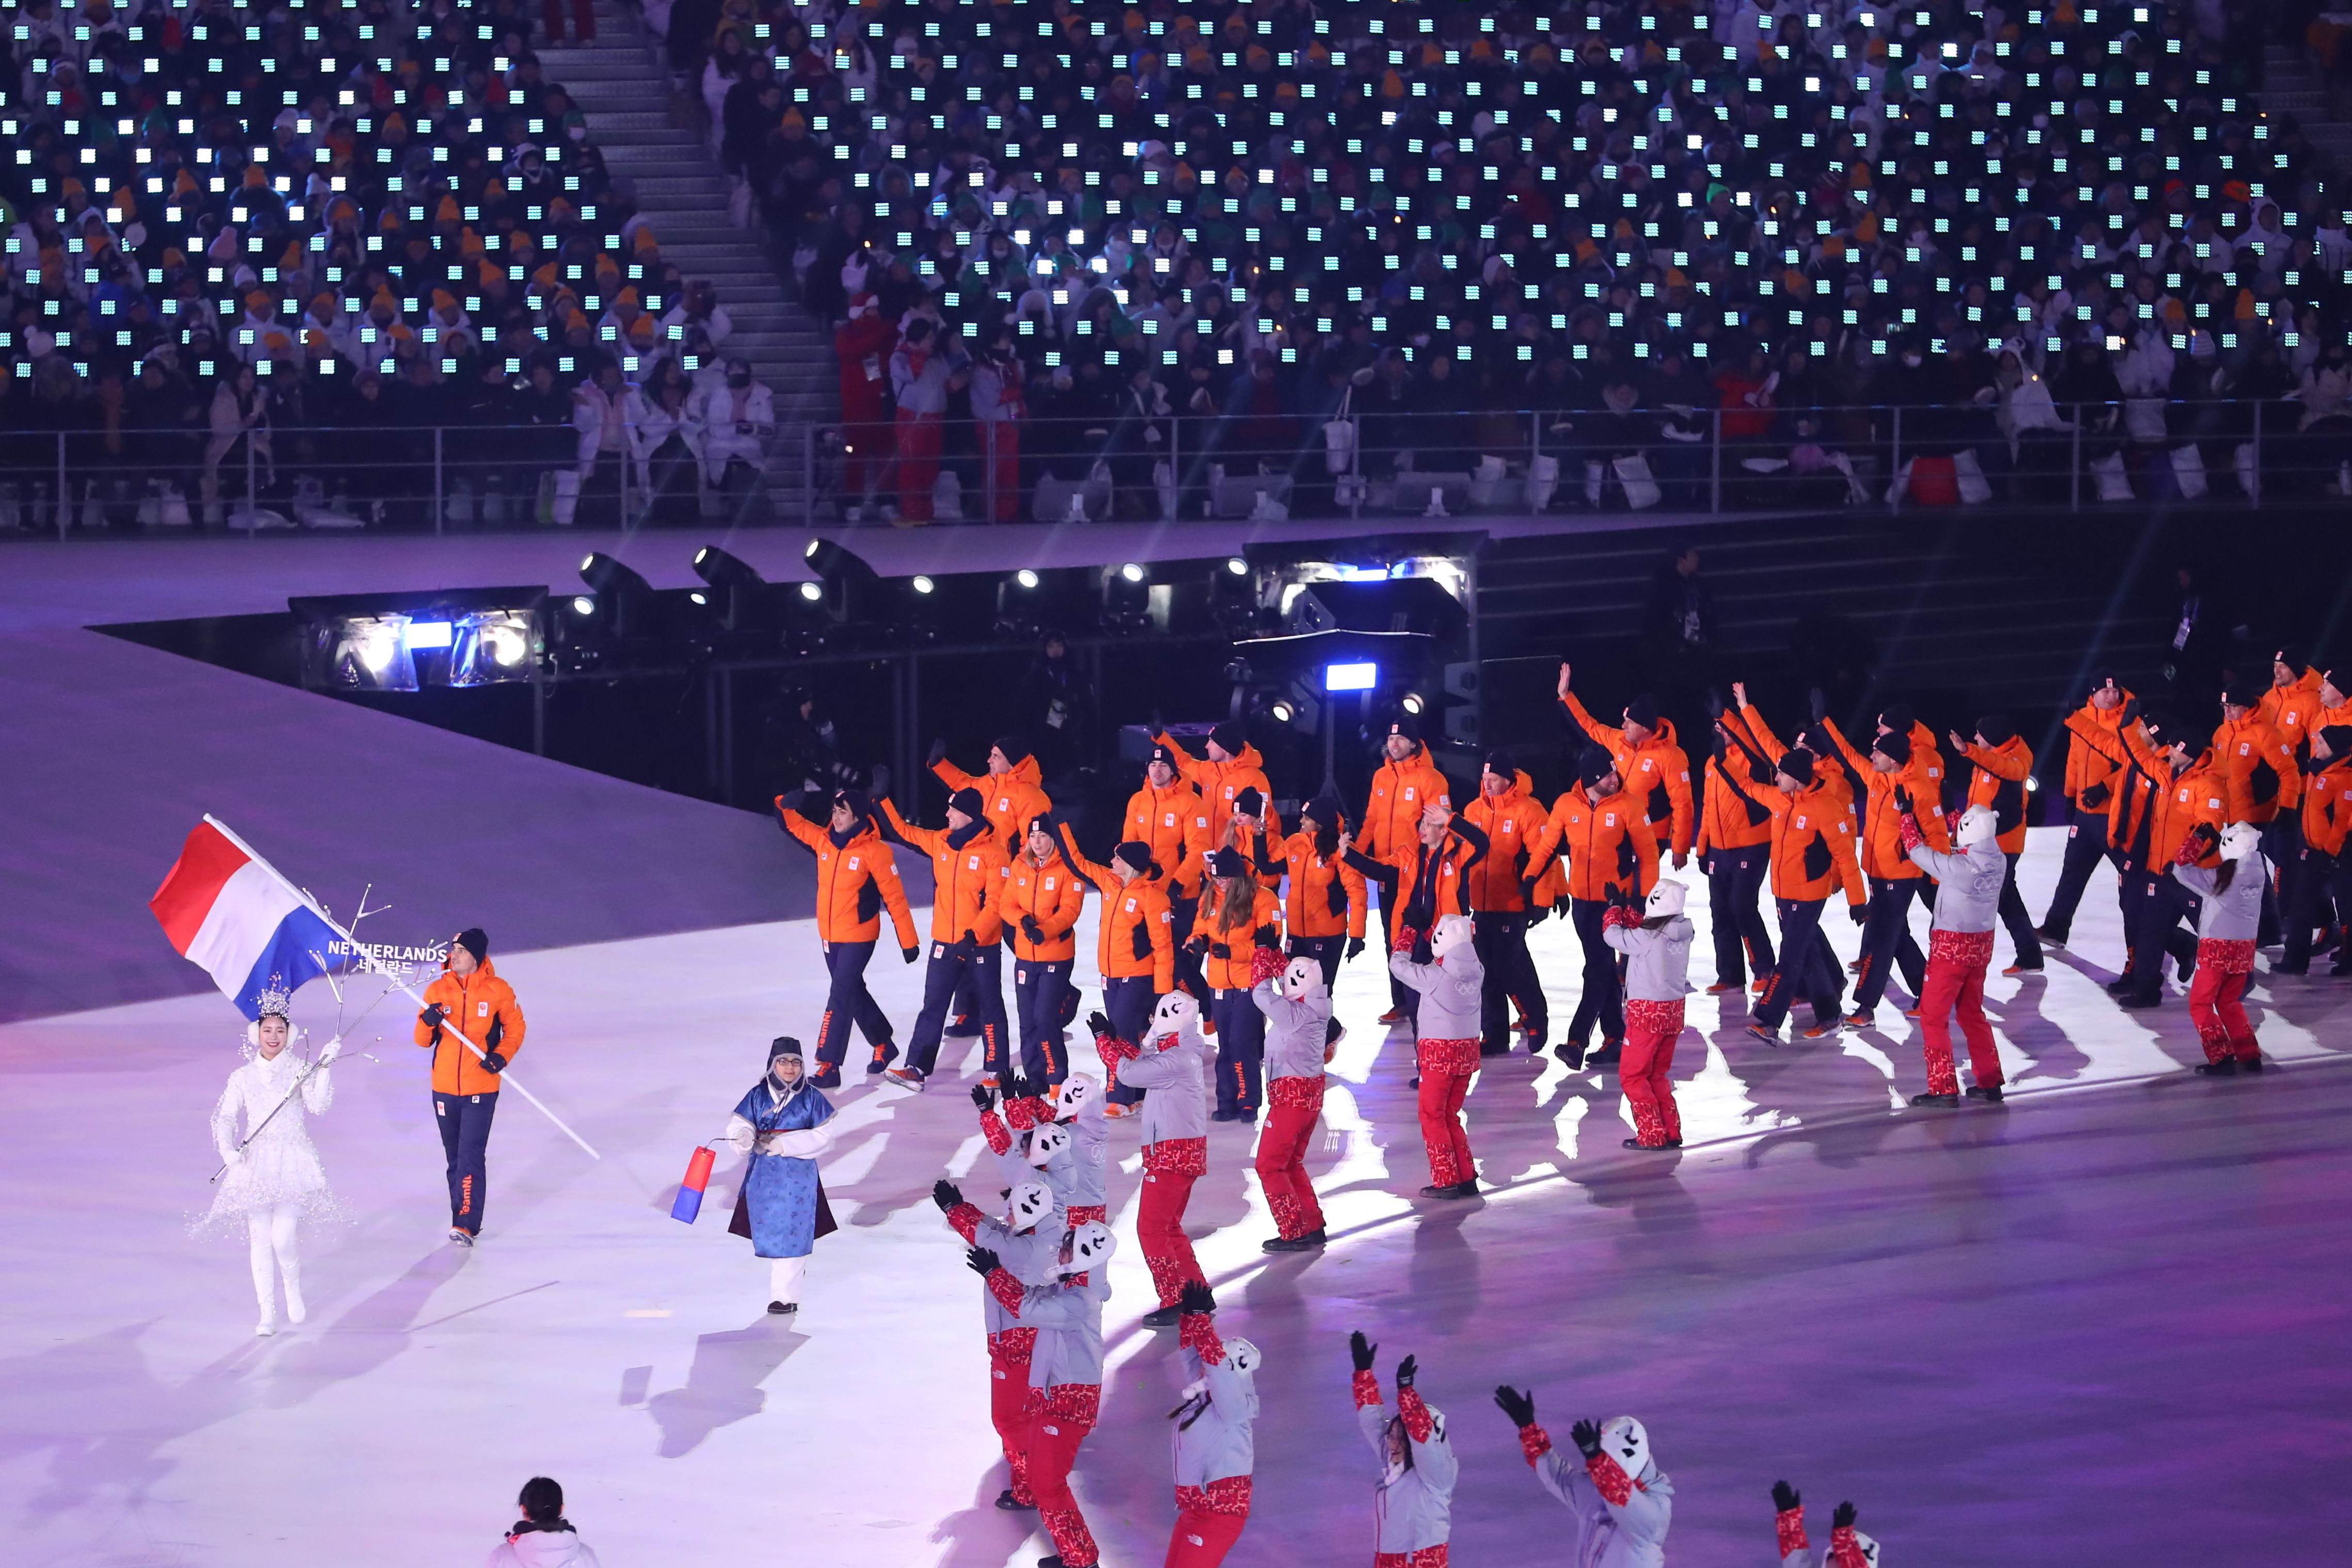 2018 Winter Olympic Games - Opening Ceremony Holland / Netherlands,  PYEONGCHANG-GUN, SOUTH KOREA - FEBRUARY 09: Flag bearer Jan Smeekens of the Netherlands leads his country out during the Opening Ceremony of the PyeongChang 2018 Winter Olympic Games at PyeongChang Olympic Stadium on February 9, 2018 in Pyeongchang-gun, South Korea.  XXIII. OLYMPIC WINTER GAMES PYEONGCHANG 2018: OPENING CEREMONY,  PyeongChang, Korea, Winter Olympics; PyeongChang Olympic Stadium, on 9. February 2018, fee liable image, copyright © ATP / OSADA Yohei  Featuring: Flag bearer Jan Smeekens of the Netherlands leads his country Where: Pyeongchang, Gangwon Province, South Korea When: 09 Feb 2018 Credit: ATP/WENN.com  **Not available for publication in Germany or France. No Contact Music.**